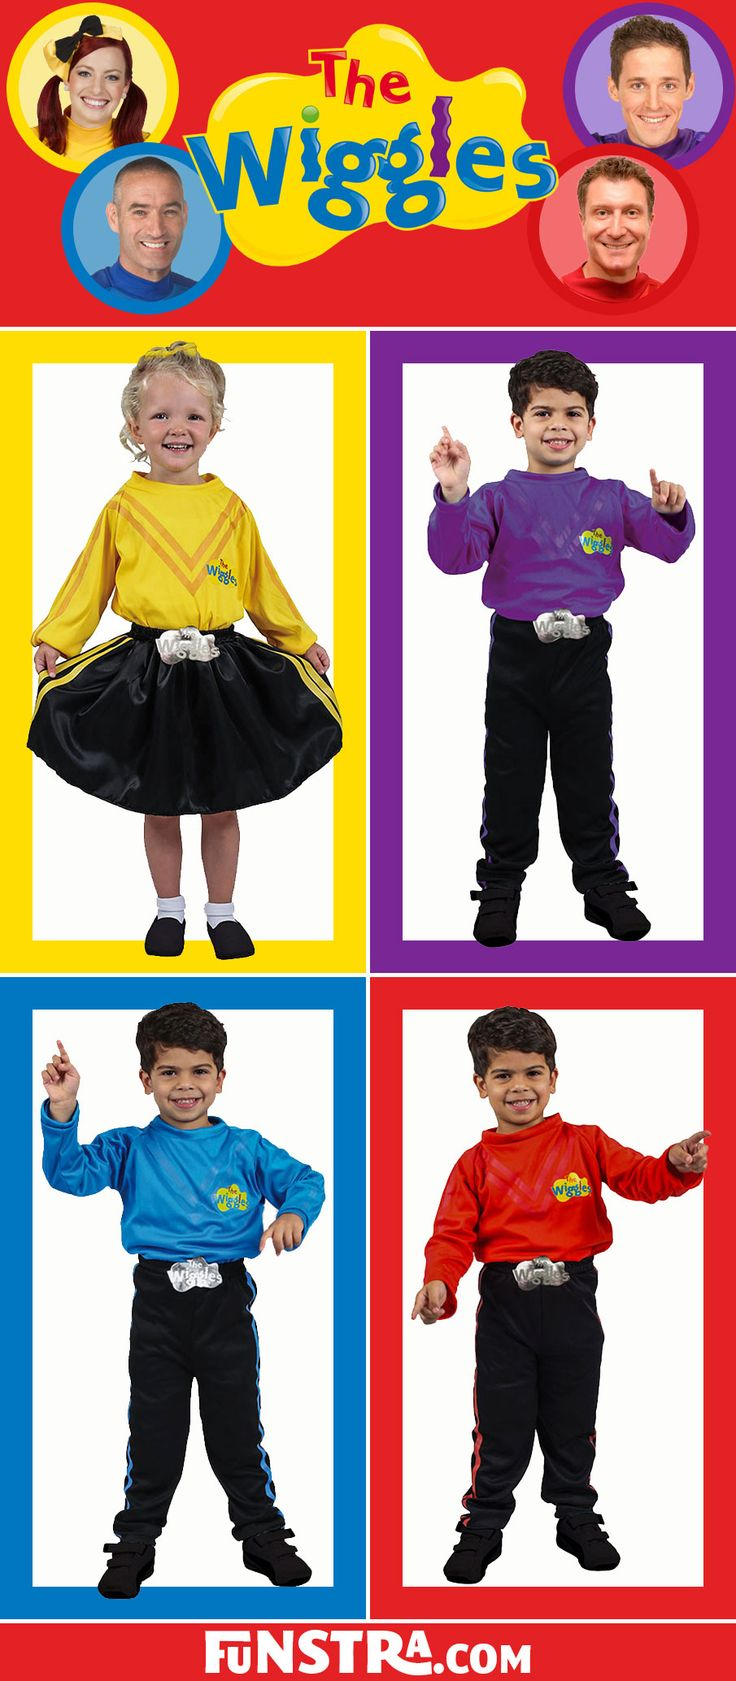 The Wiggles Costumes available now at Funstra. Dress up as Emma in yellow, Lachy in purple, Simon in red or Anthony in blue and sing, dance, wiggle and giggle with our Wiggles costumes.